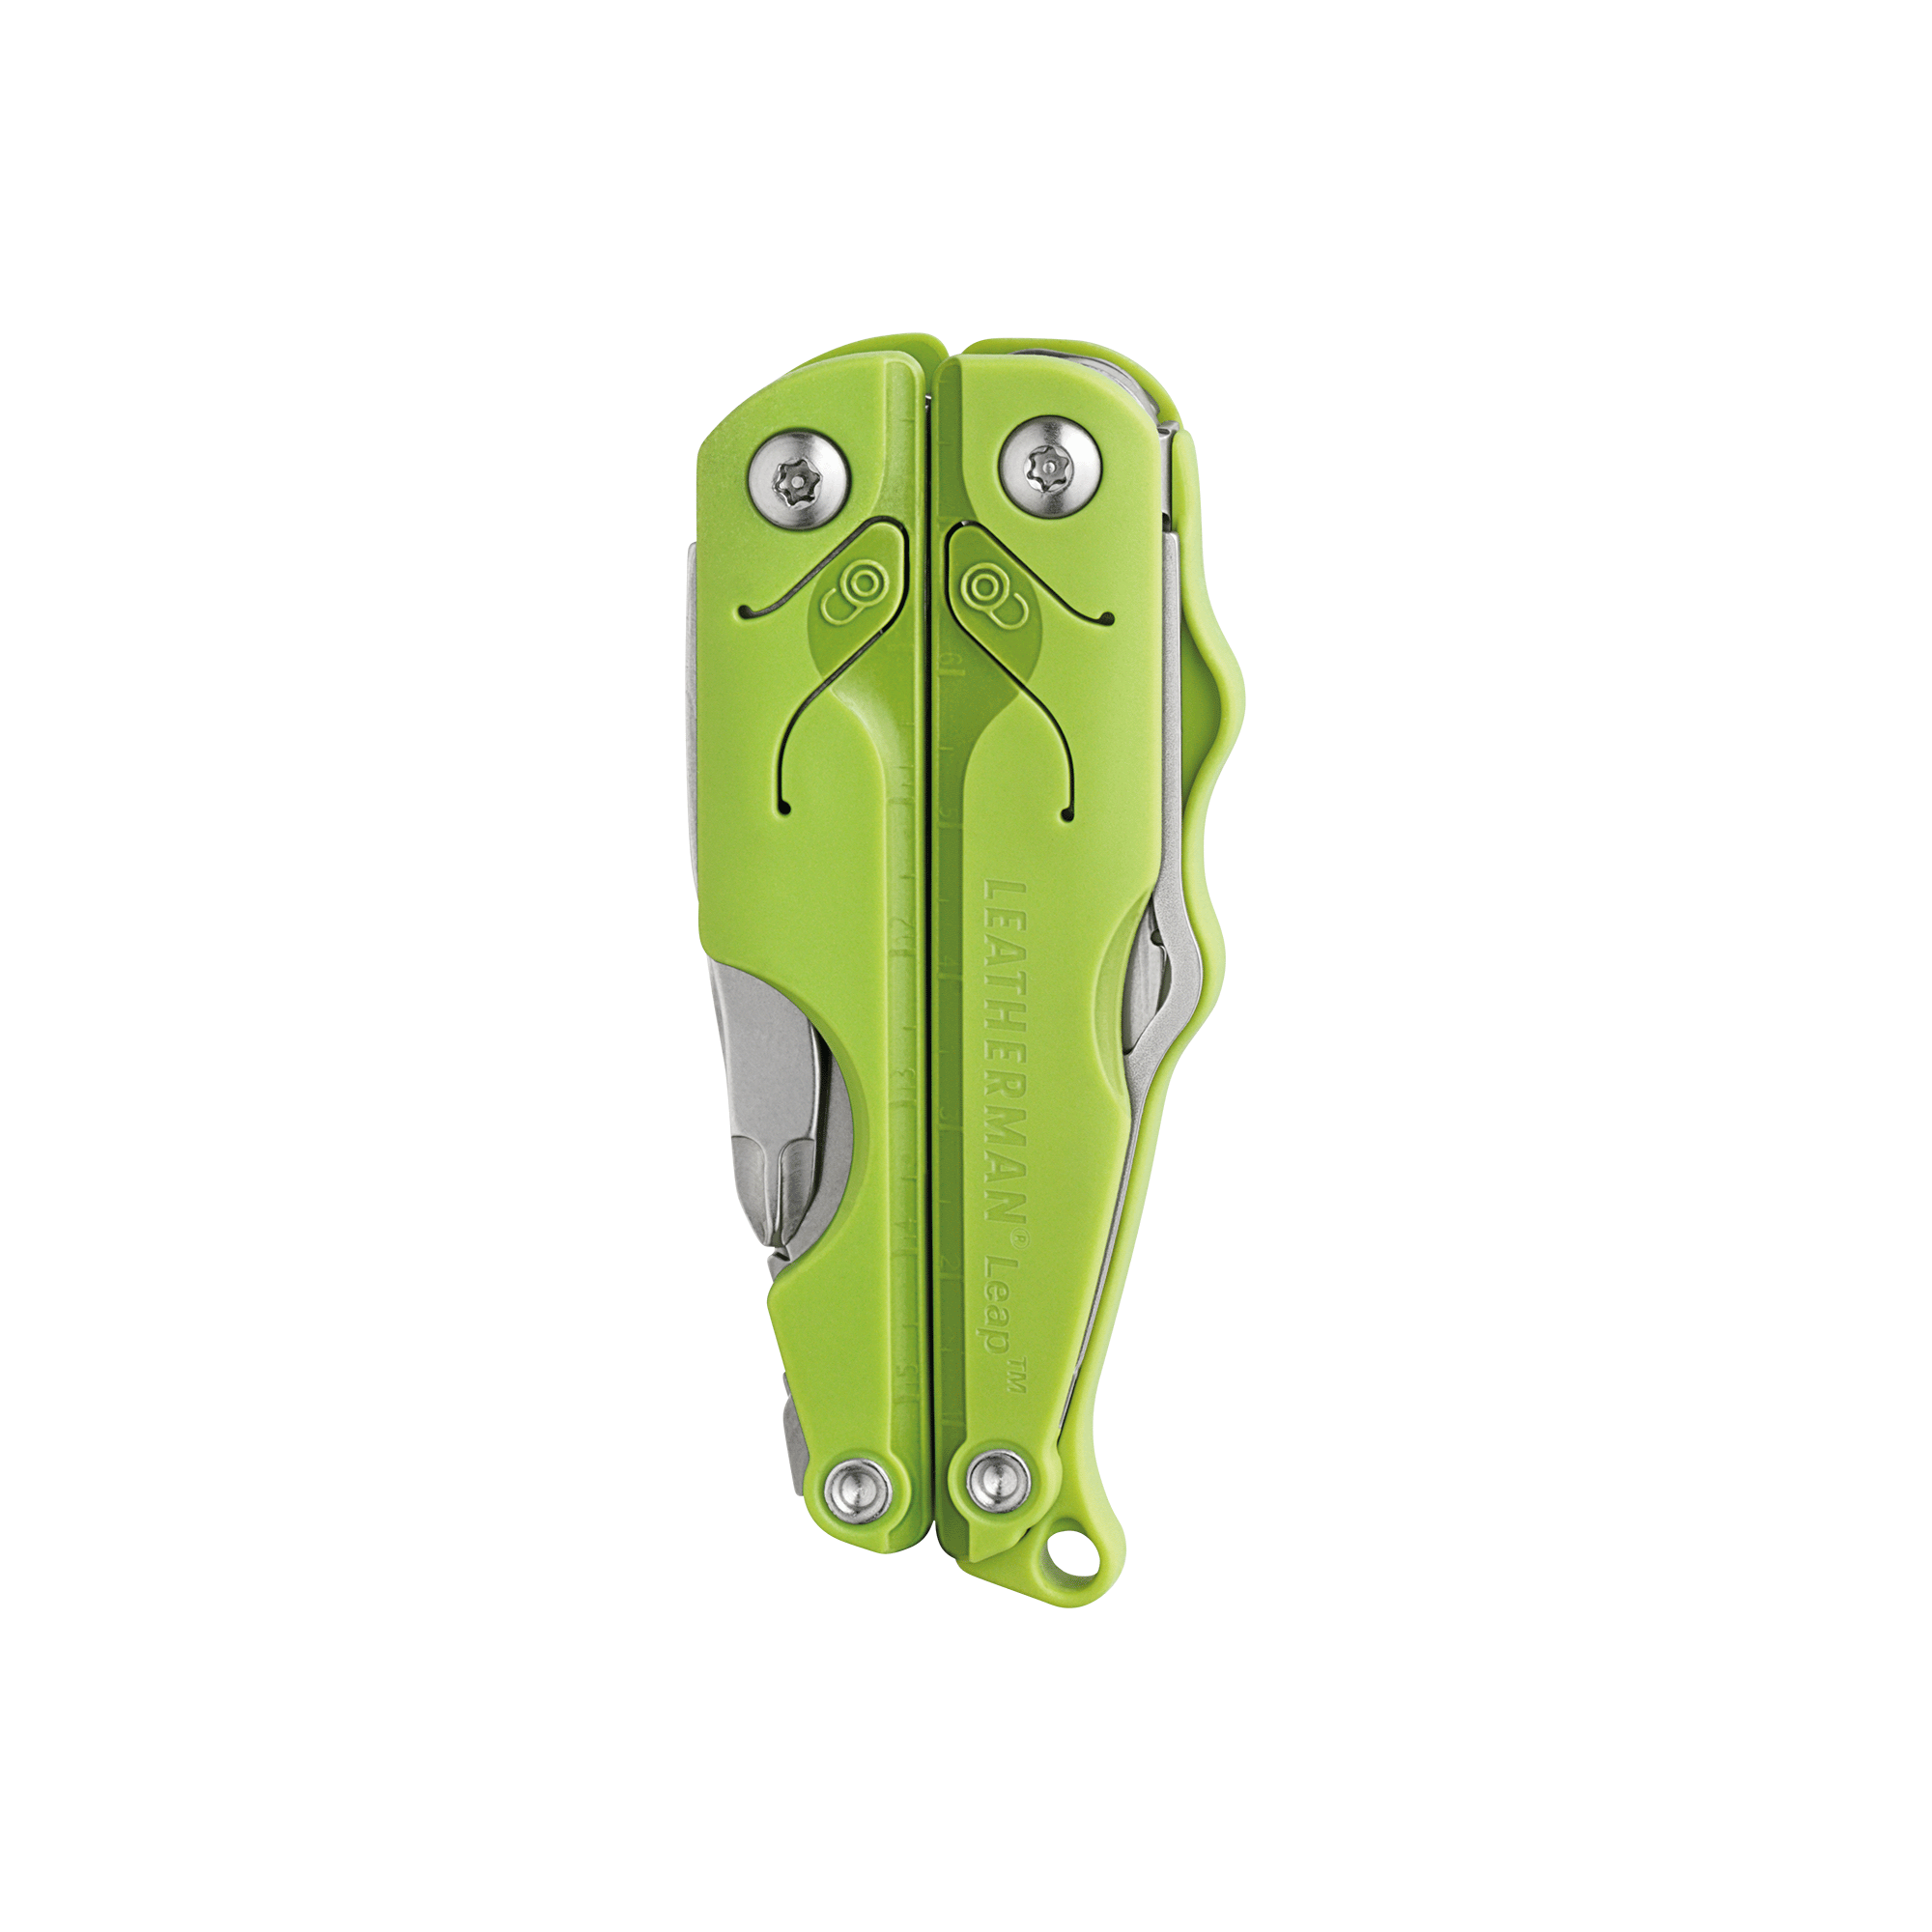 Leatherman leap multi-tool, green, closed view, multi-tool for children